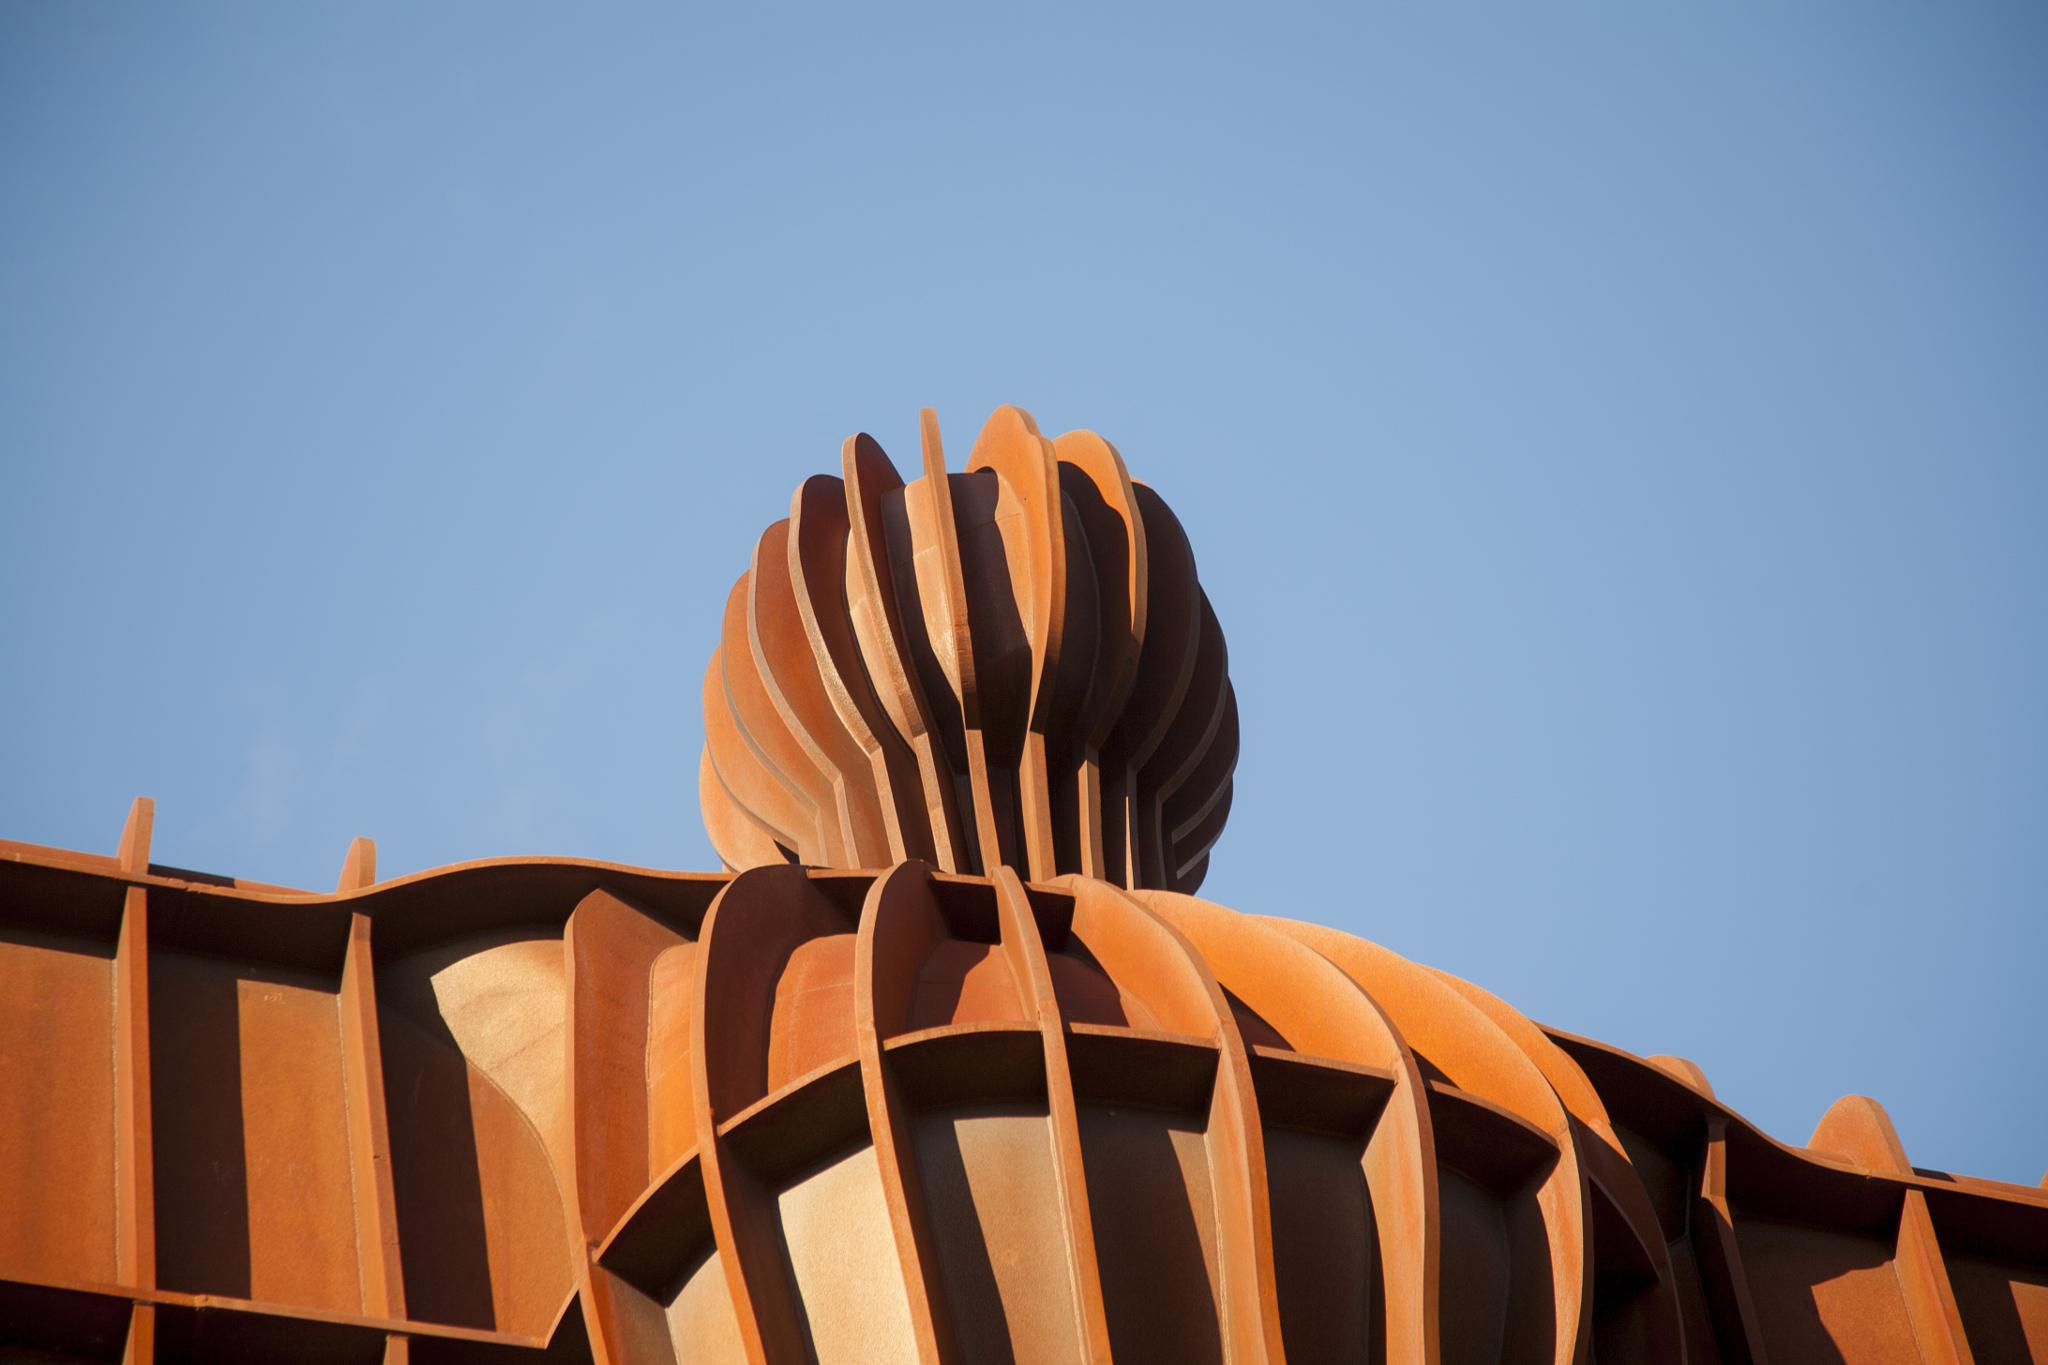 THE ANGEL OF THE NORTH: close up and personal by Robbie Clark Photographics